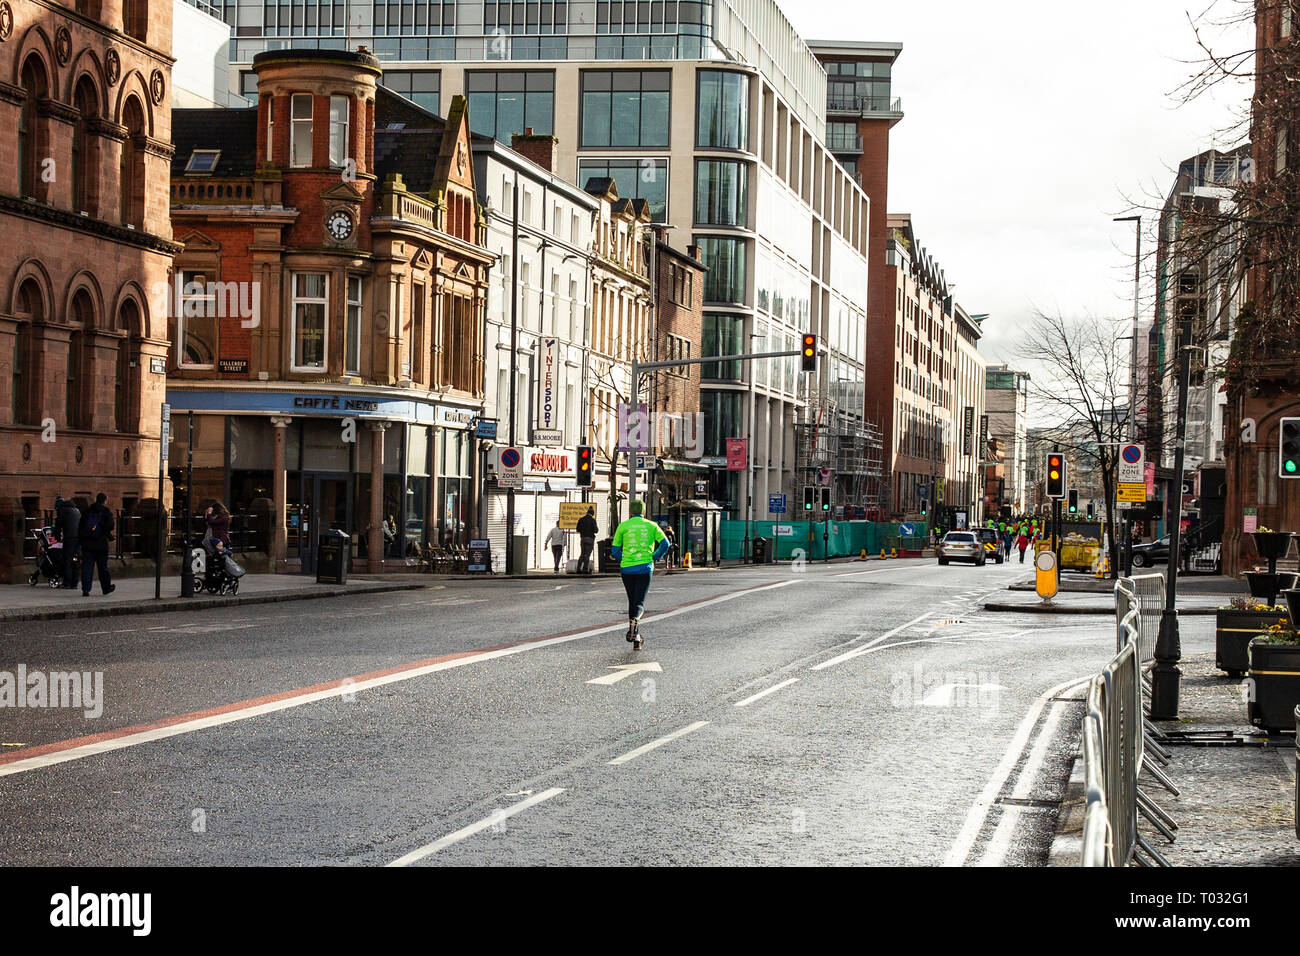 Belfast Northern Ireland Uk 17th March 2019 Almost 2000